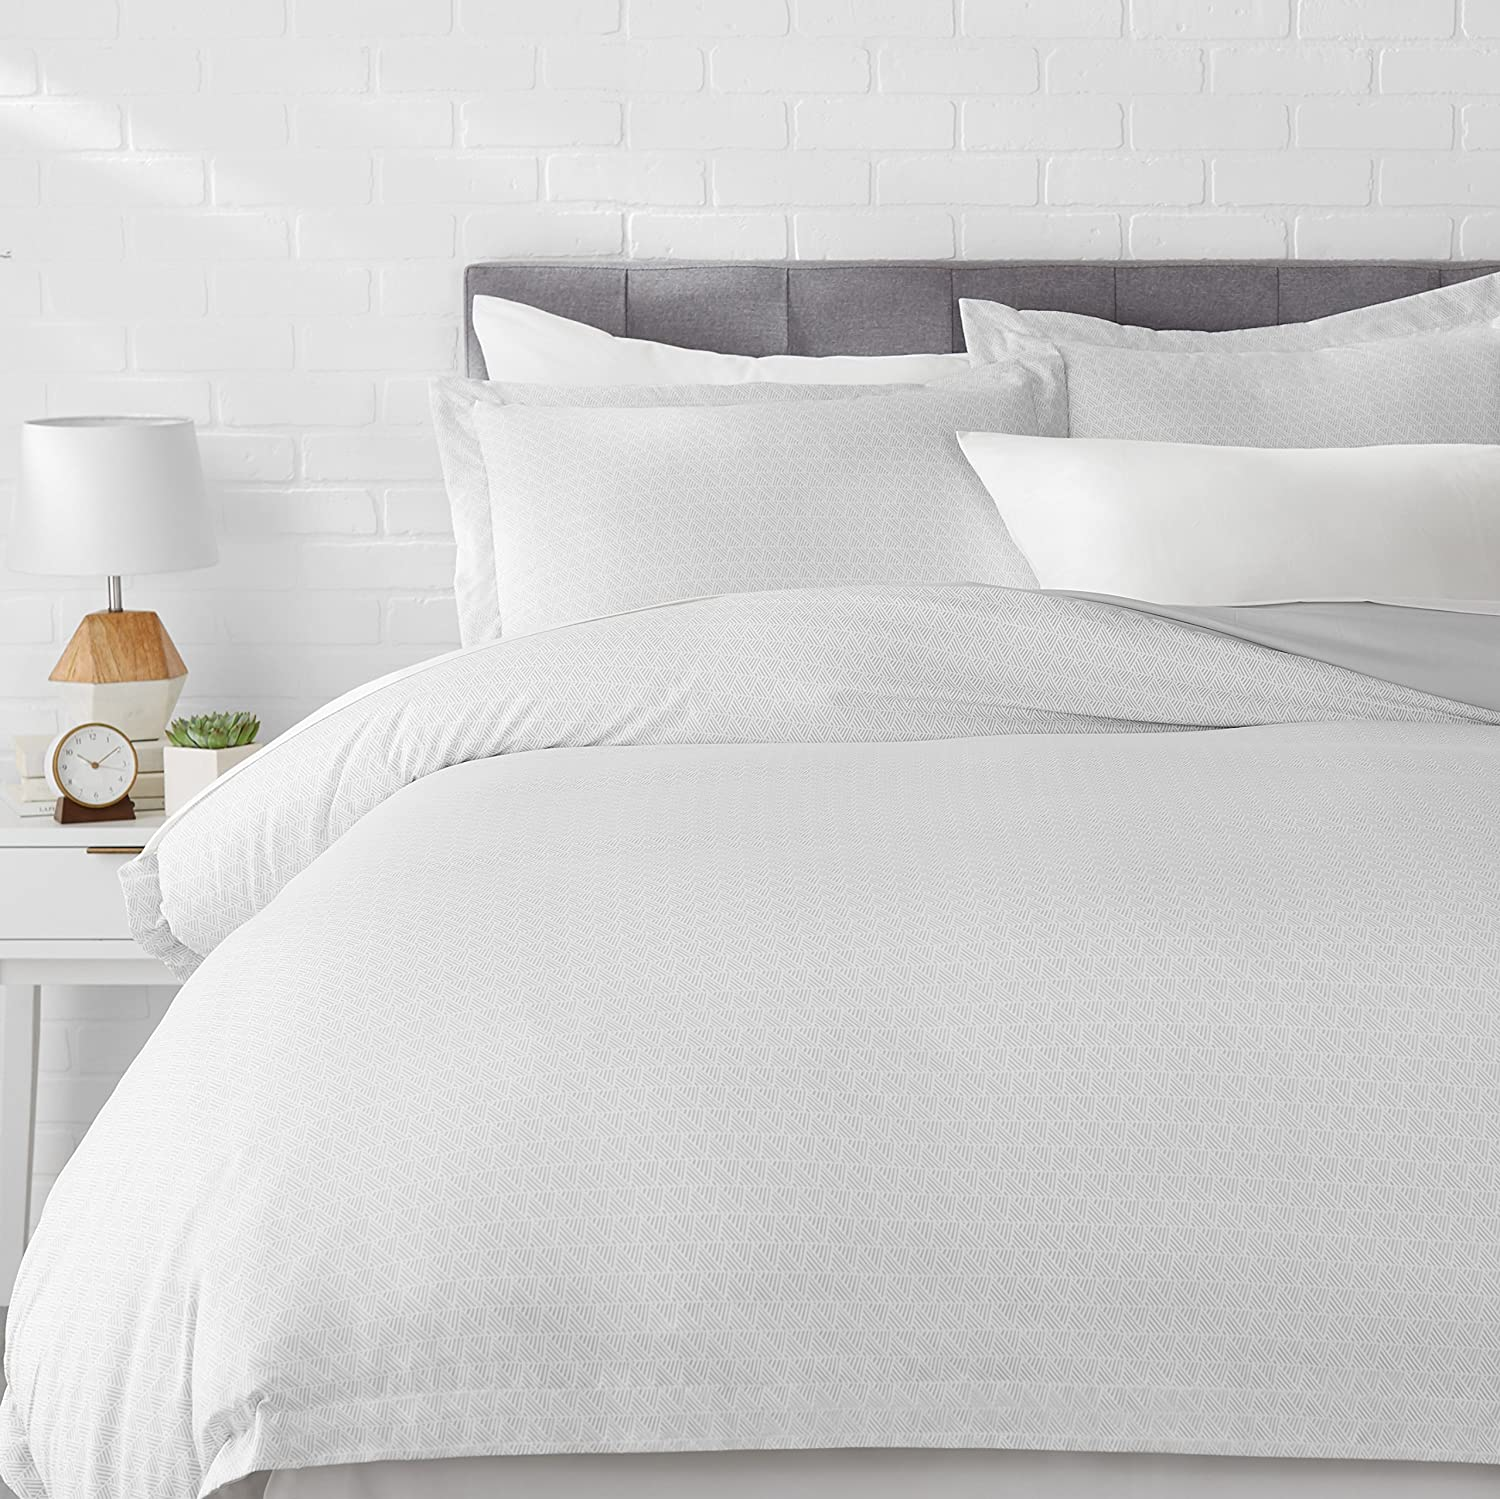 AmazonBasics Light-Weight Microfiber Duvet Cover Set with Snap Buttons - King, Grey Crosshatch